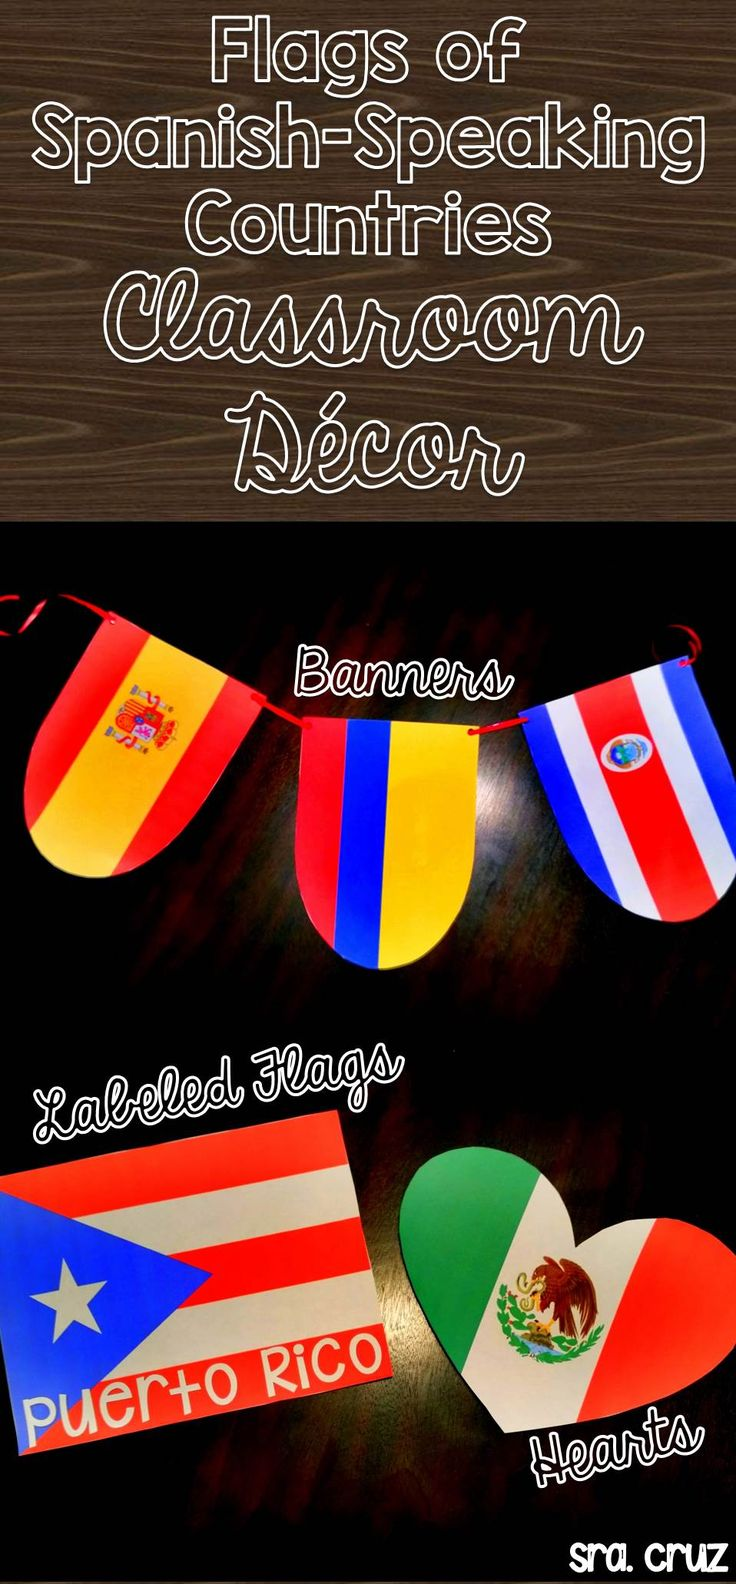 Flags of Spanish-Speaking Countries Classroom Decor  Includes 4 different PowerPoints with decorations using the flags of the Spanish-speaking countries.   1) Flags 2) Flags labeled with the country name 3) Flag Banners 4) Flags Hearts https://www.teacherspayteachers.com/Product/Flags-of-Spanish-Speaking-Countries-Classroom-Decor-1910590